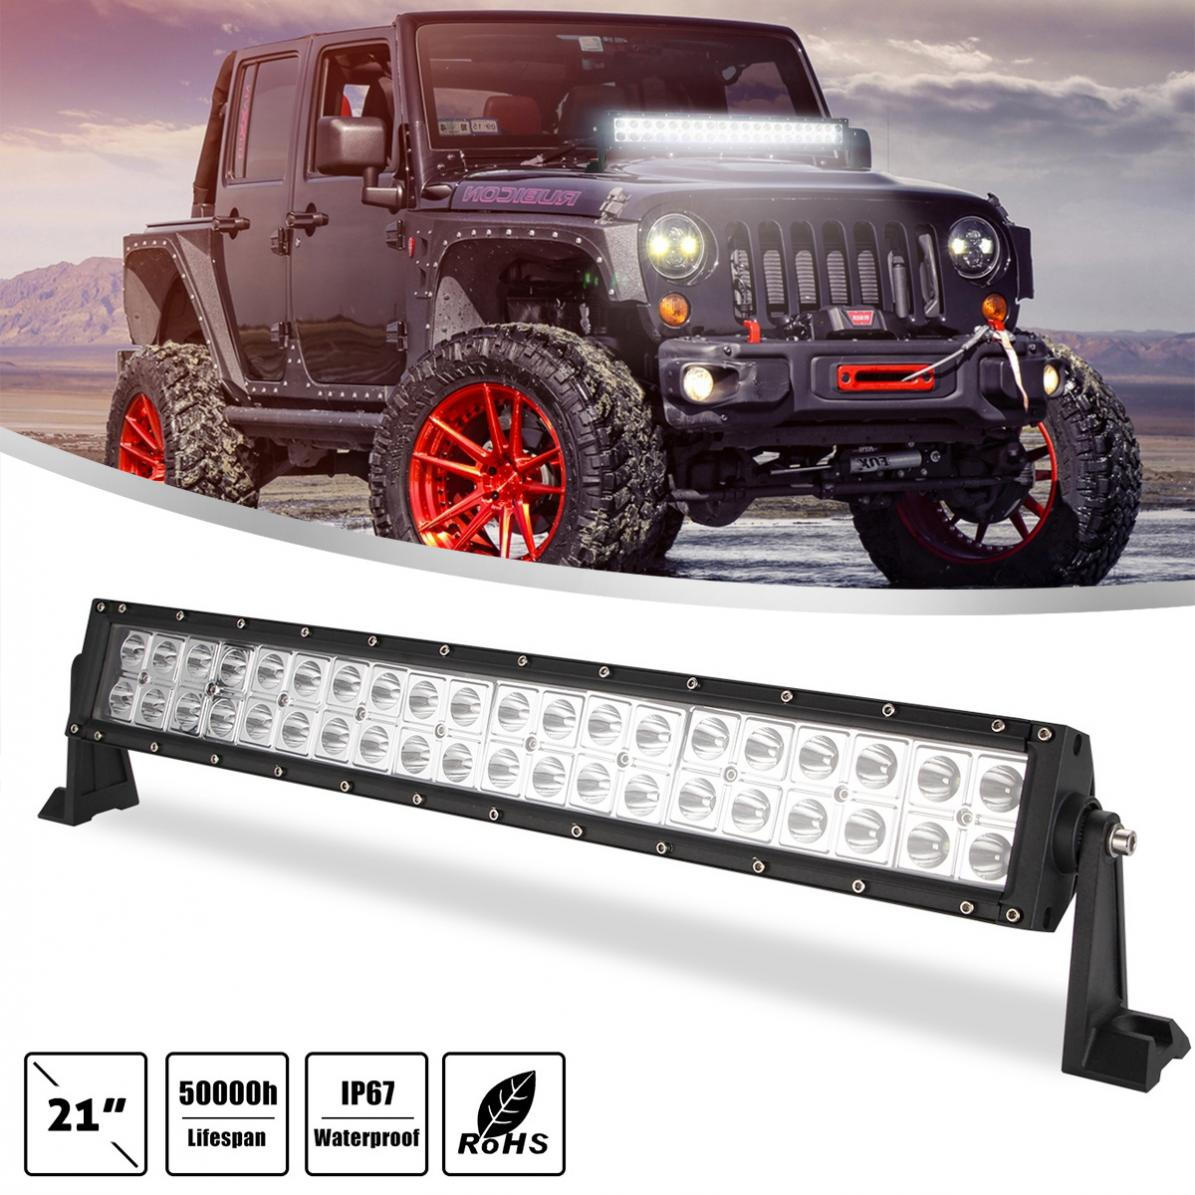 21 Inch 200W 2 Rows 6000K White Waterproof Car Led Work Light Bar for Off-Road Suv Boat 4X4 Jeep JK 4Wd Truck 12V-24V image